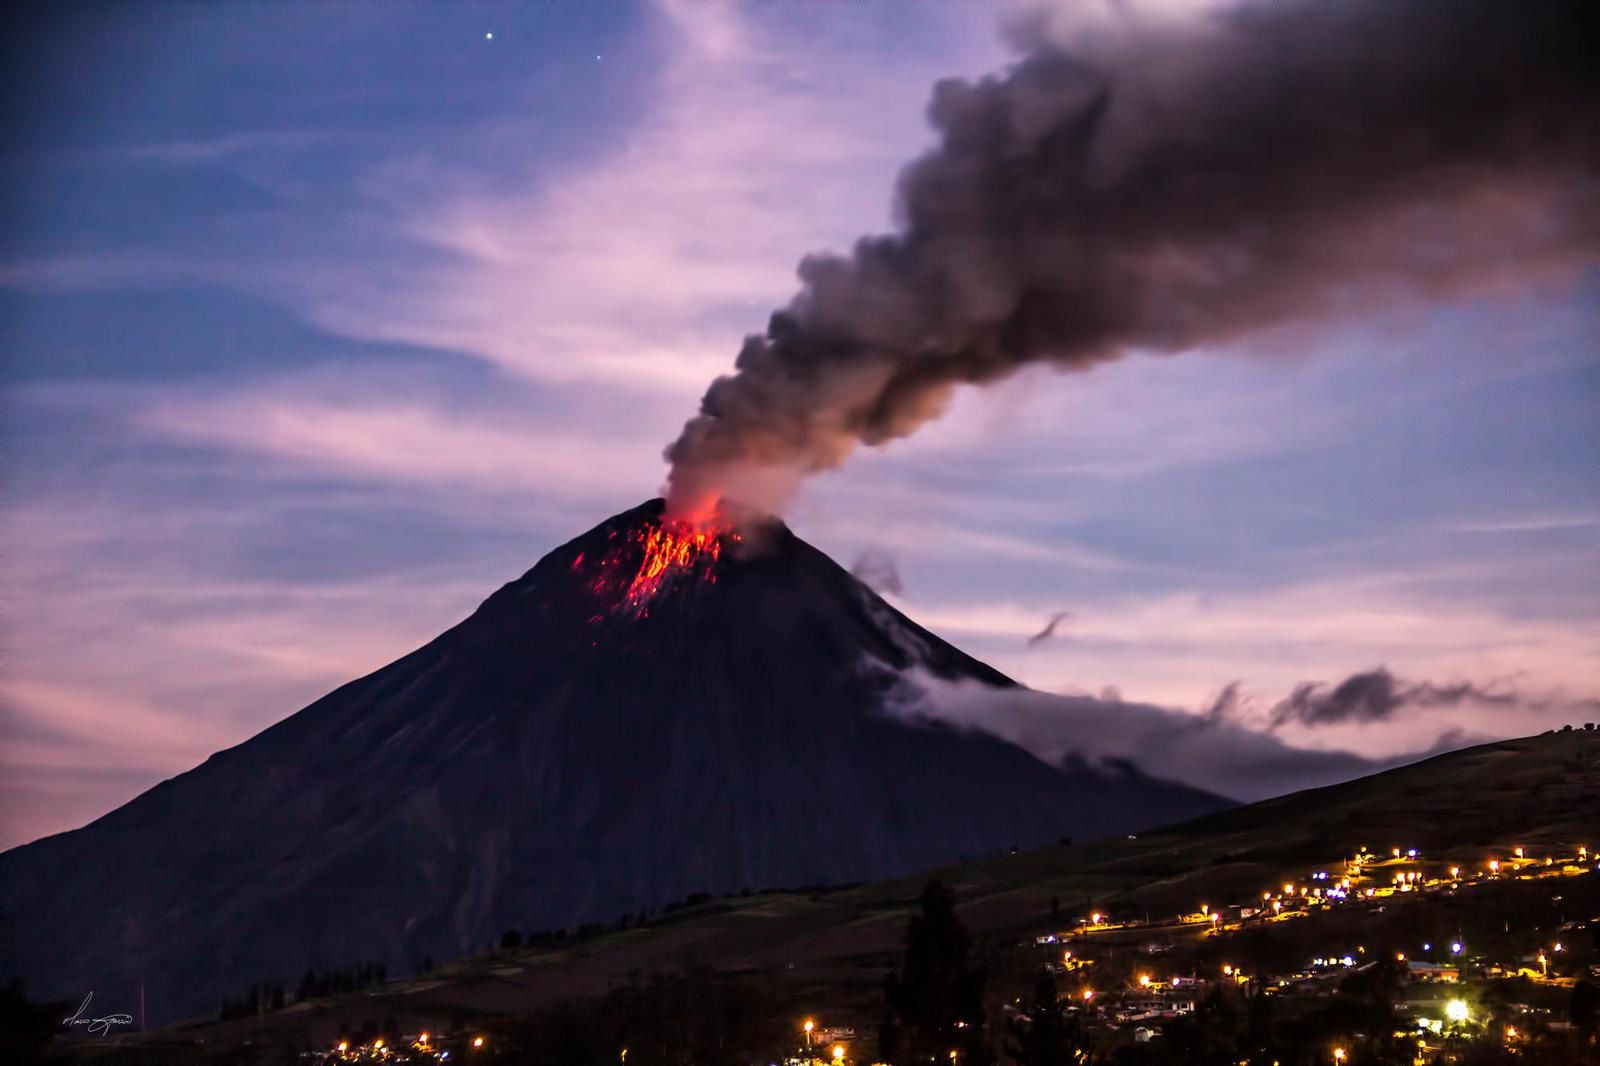 Tungurahua seen from Huambalito Pelileo - ph. Marco Garcon 11 oct.2015 / 6:48 p.m.